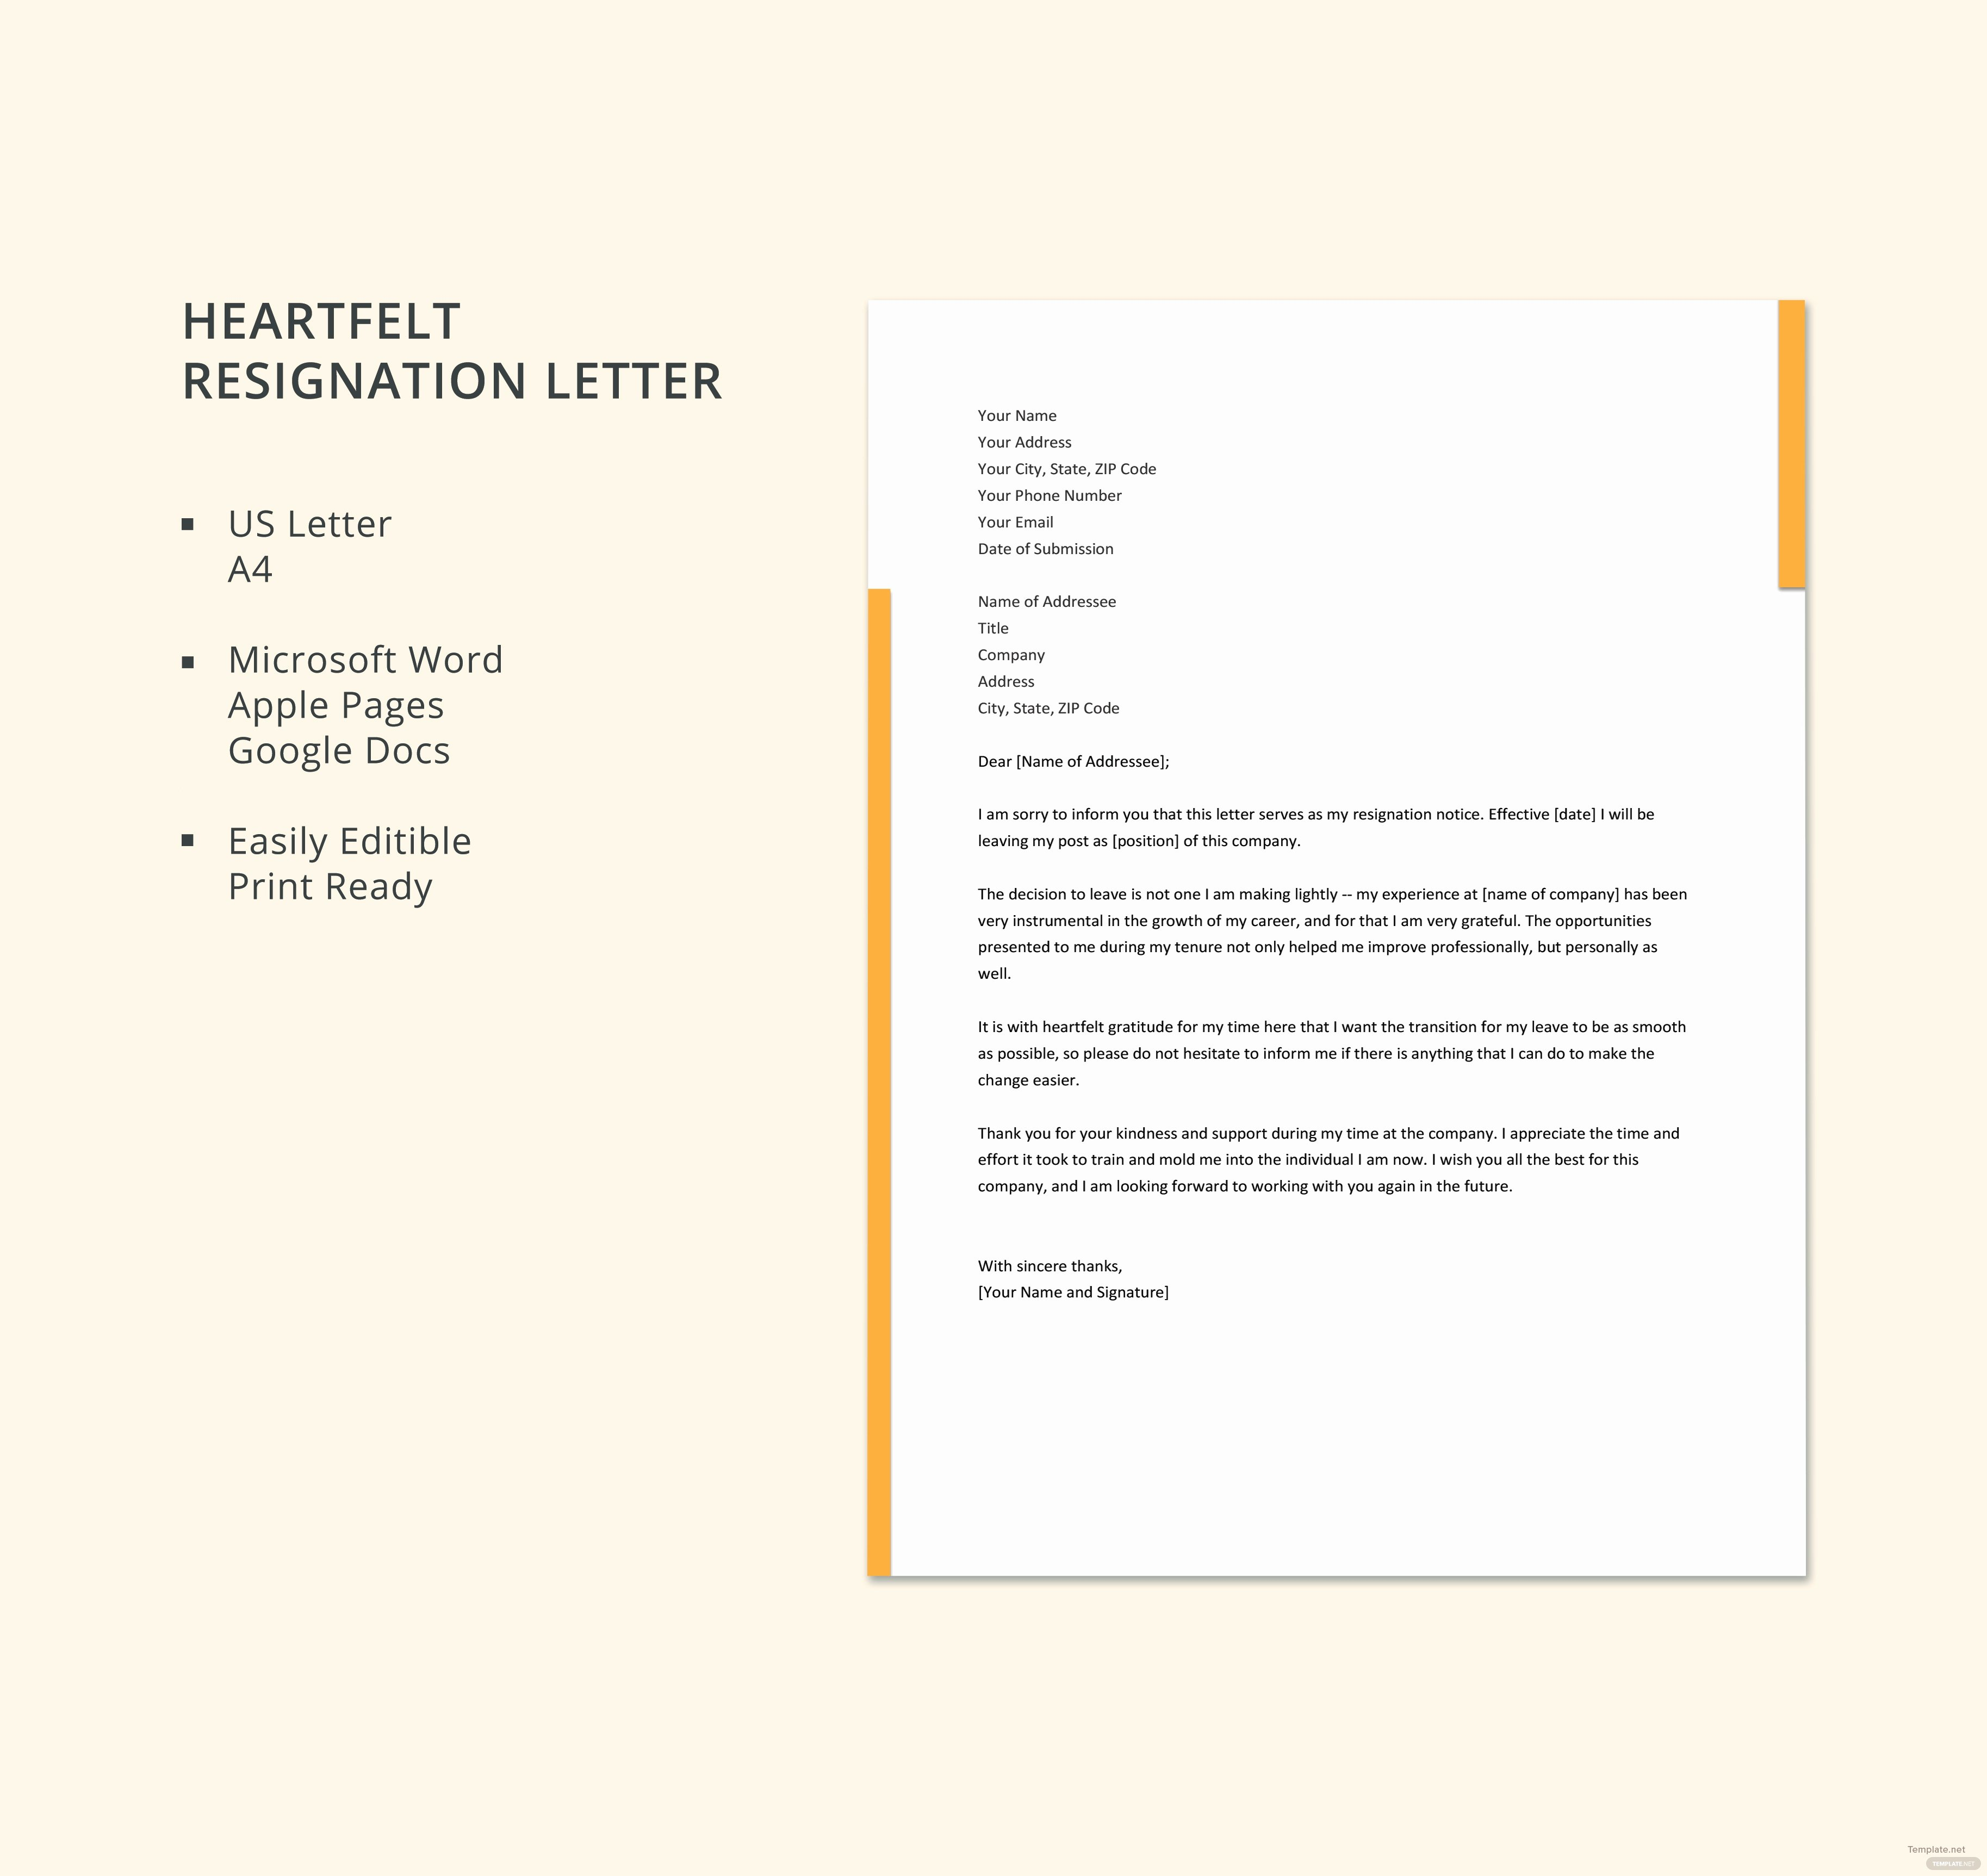 Heartfelt Resignation Letter Template Unique Free Heartfelt Resignation Letter Template In Microsoft